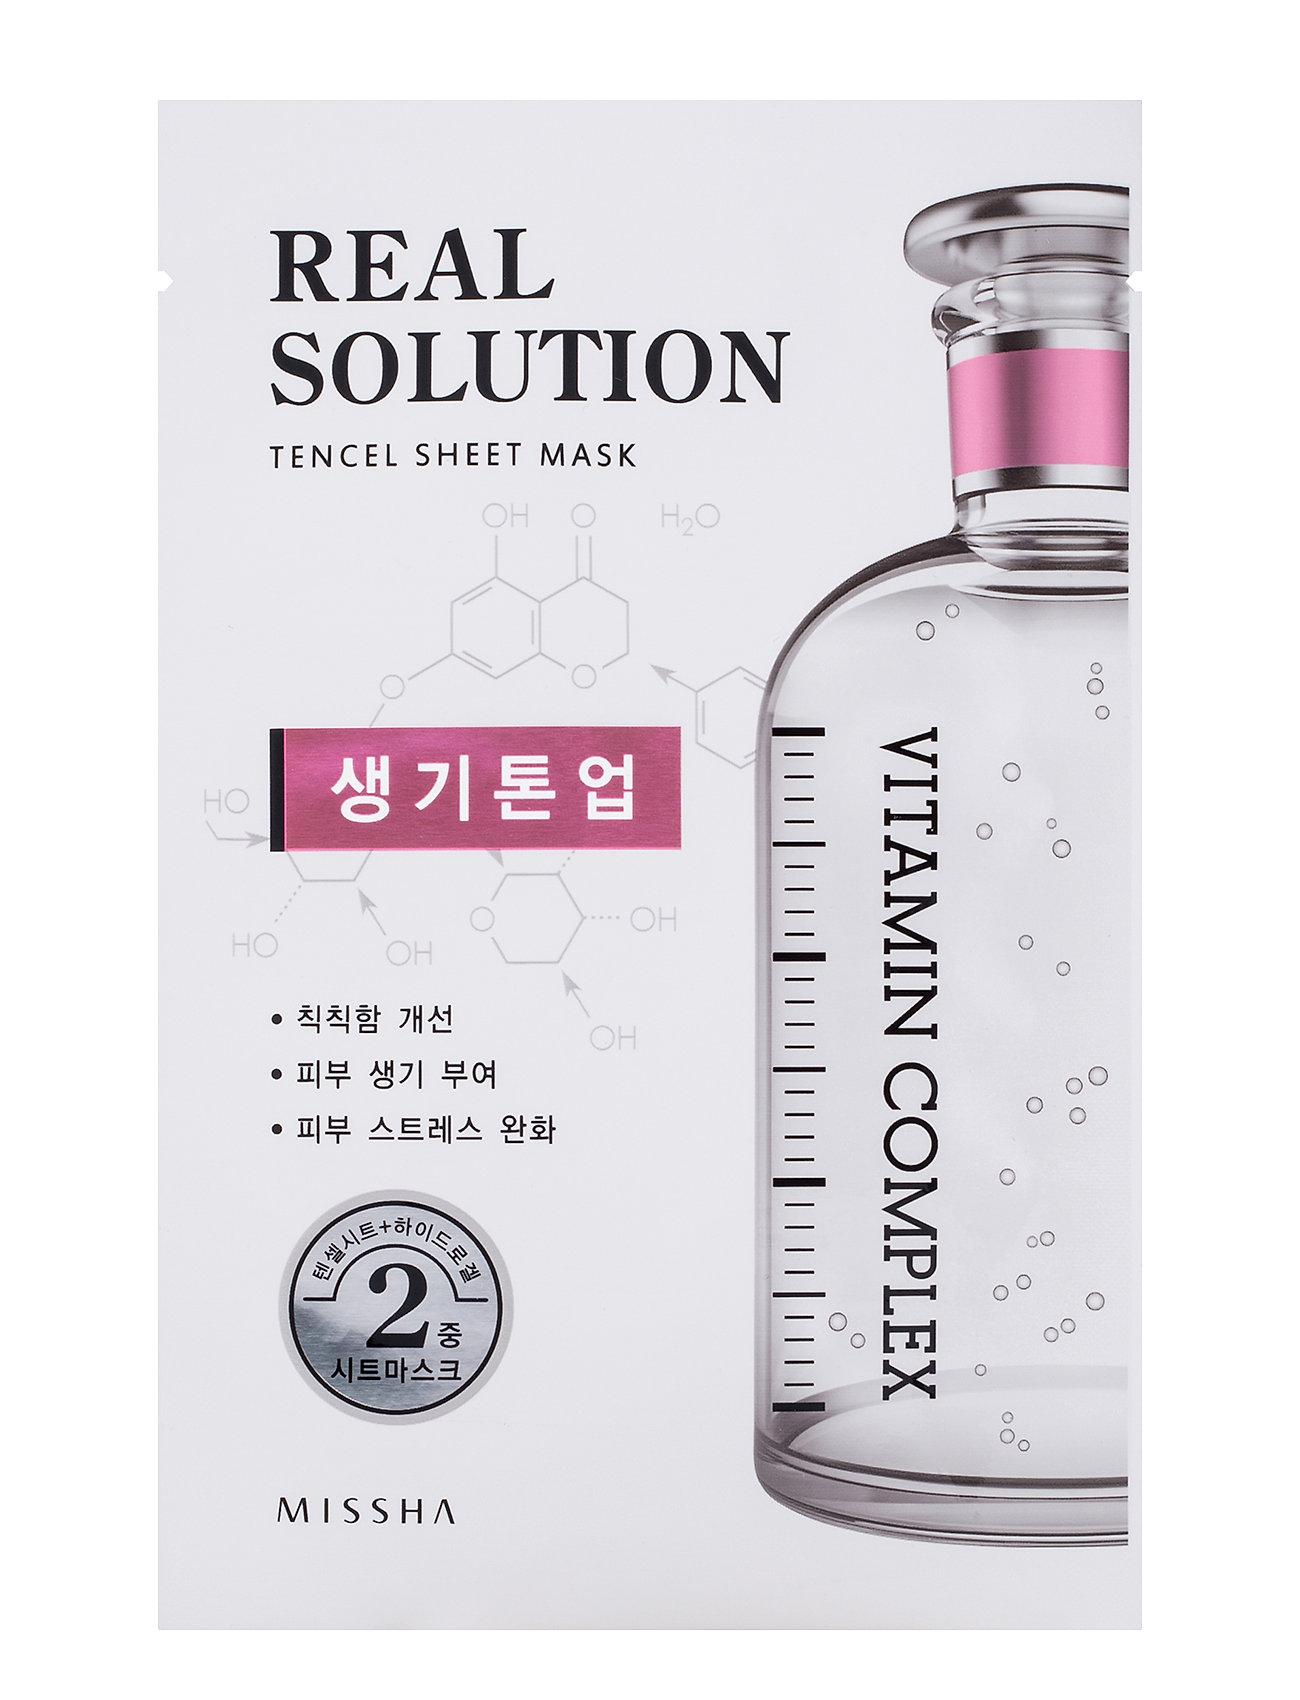 Missha Missha Real Solution Tencel Sheet Mask (Vitalizing) - CLEAR